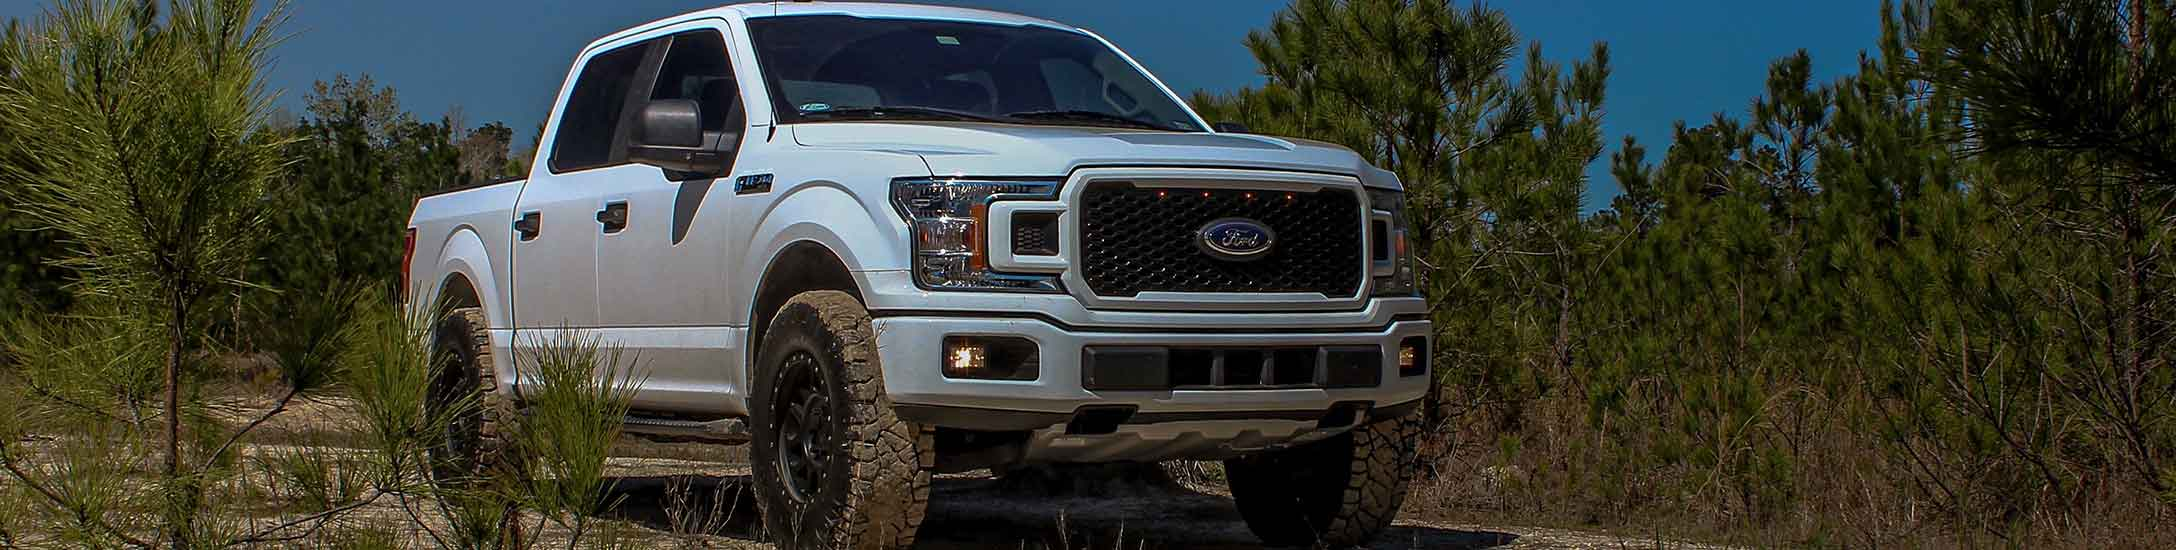 Our Gallery Of Wheels, Tires, and Lift Kits!